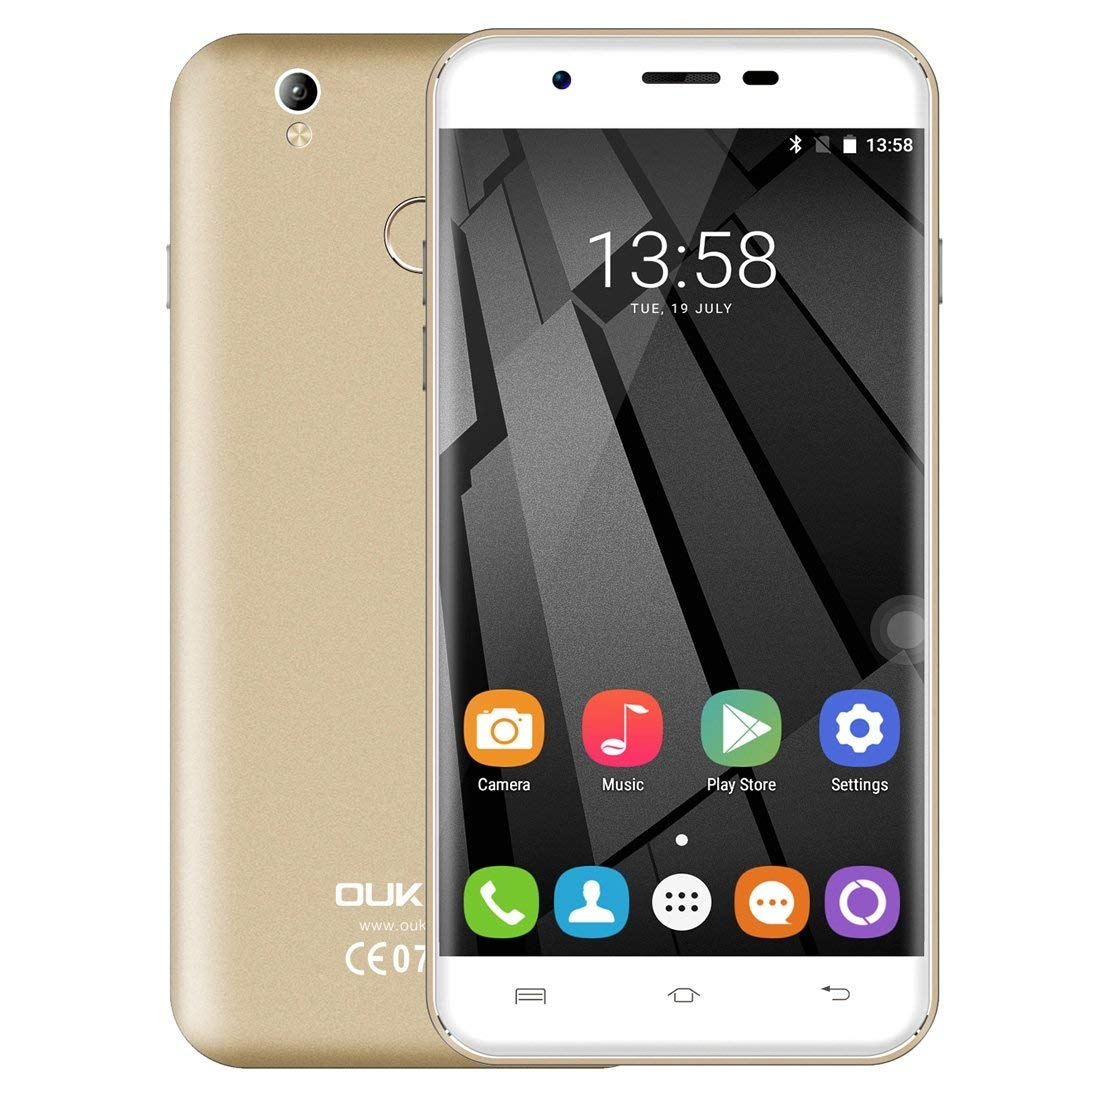 OUKITEL U7 Plus, 2GB+16GB, South American Version, 5.5 inch Android 6.0 MTK6737 Quad Core up to 1.3GHz, Network: 4G, Dual SIM (Gold)